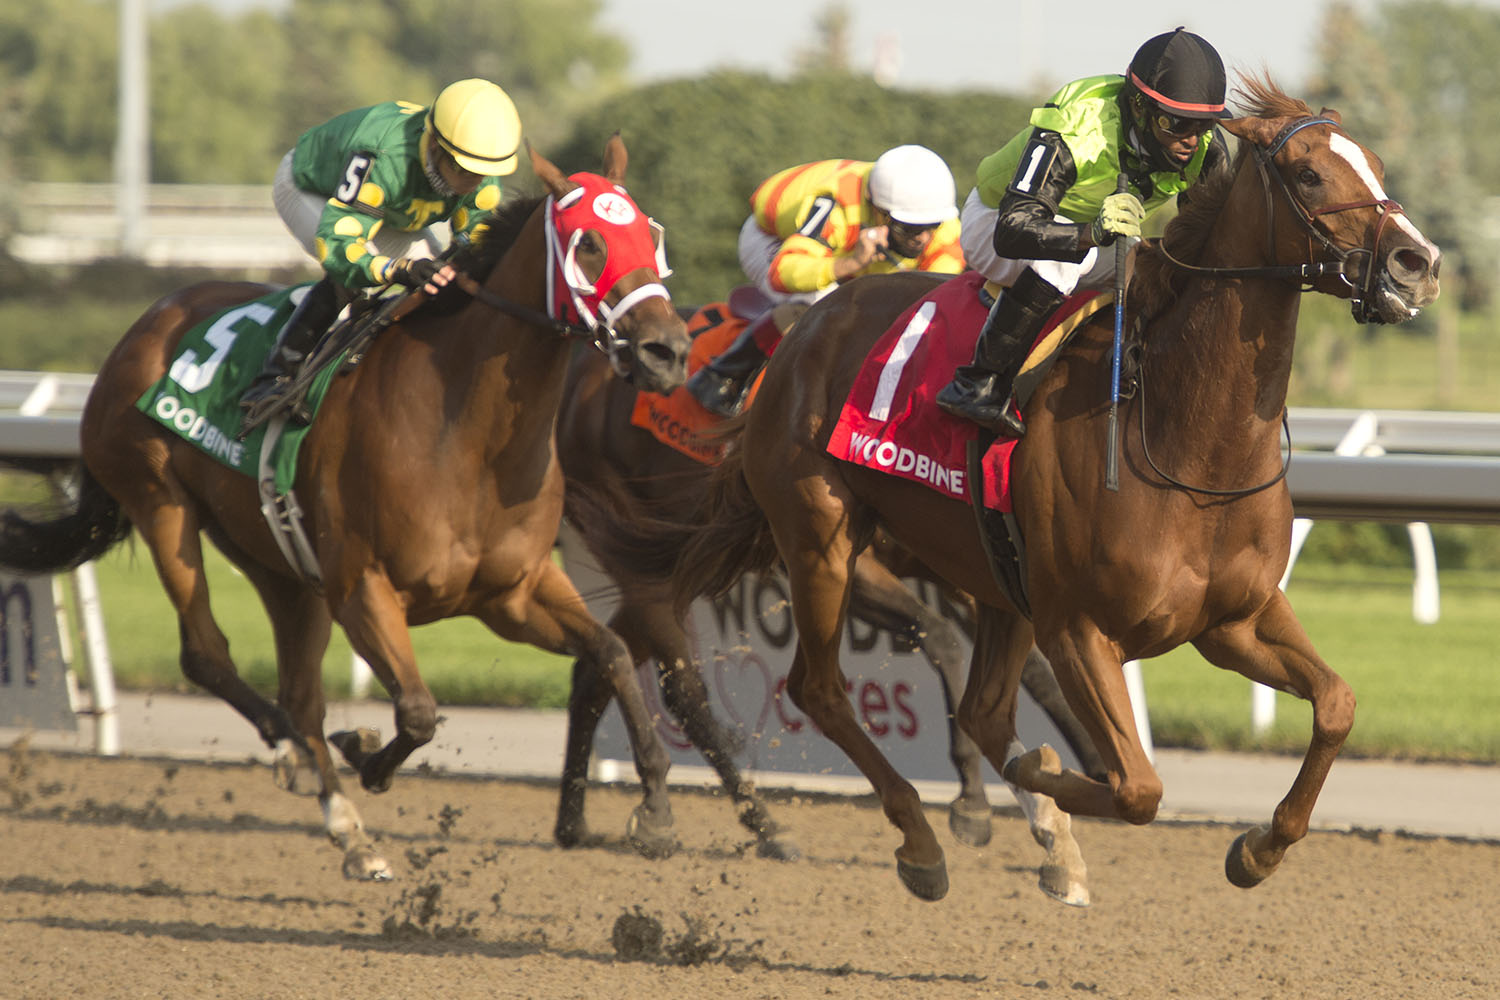 Curlin's Voyage winning the $500,000 Woodbine Oaks Presented by Budweiser over Afleet Katherine on August 15 at Woodbine Racetrack. (Michael Burns Photo)